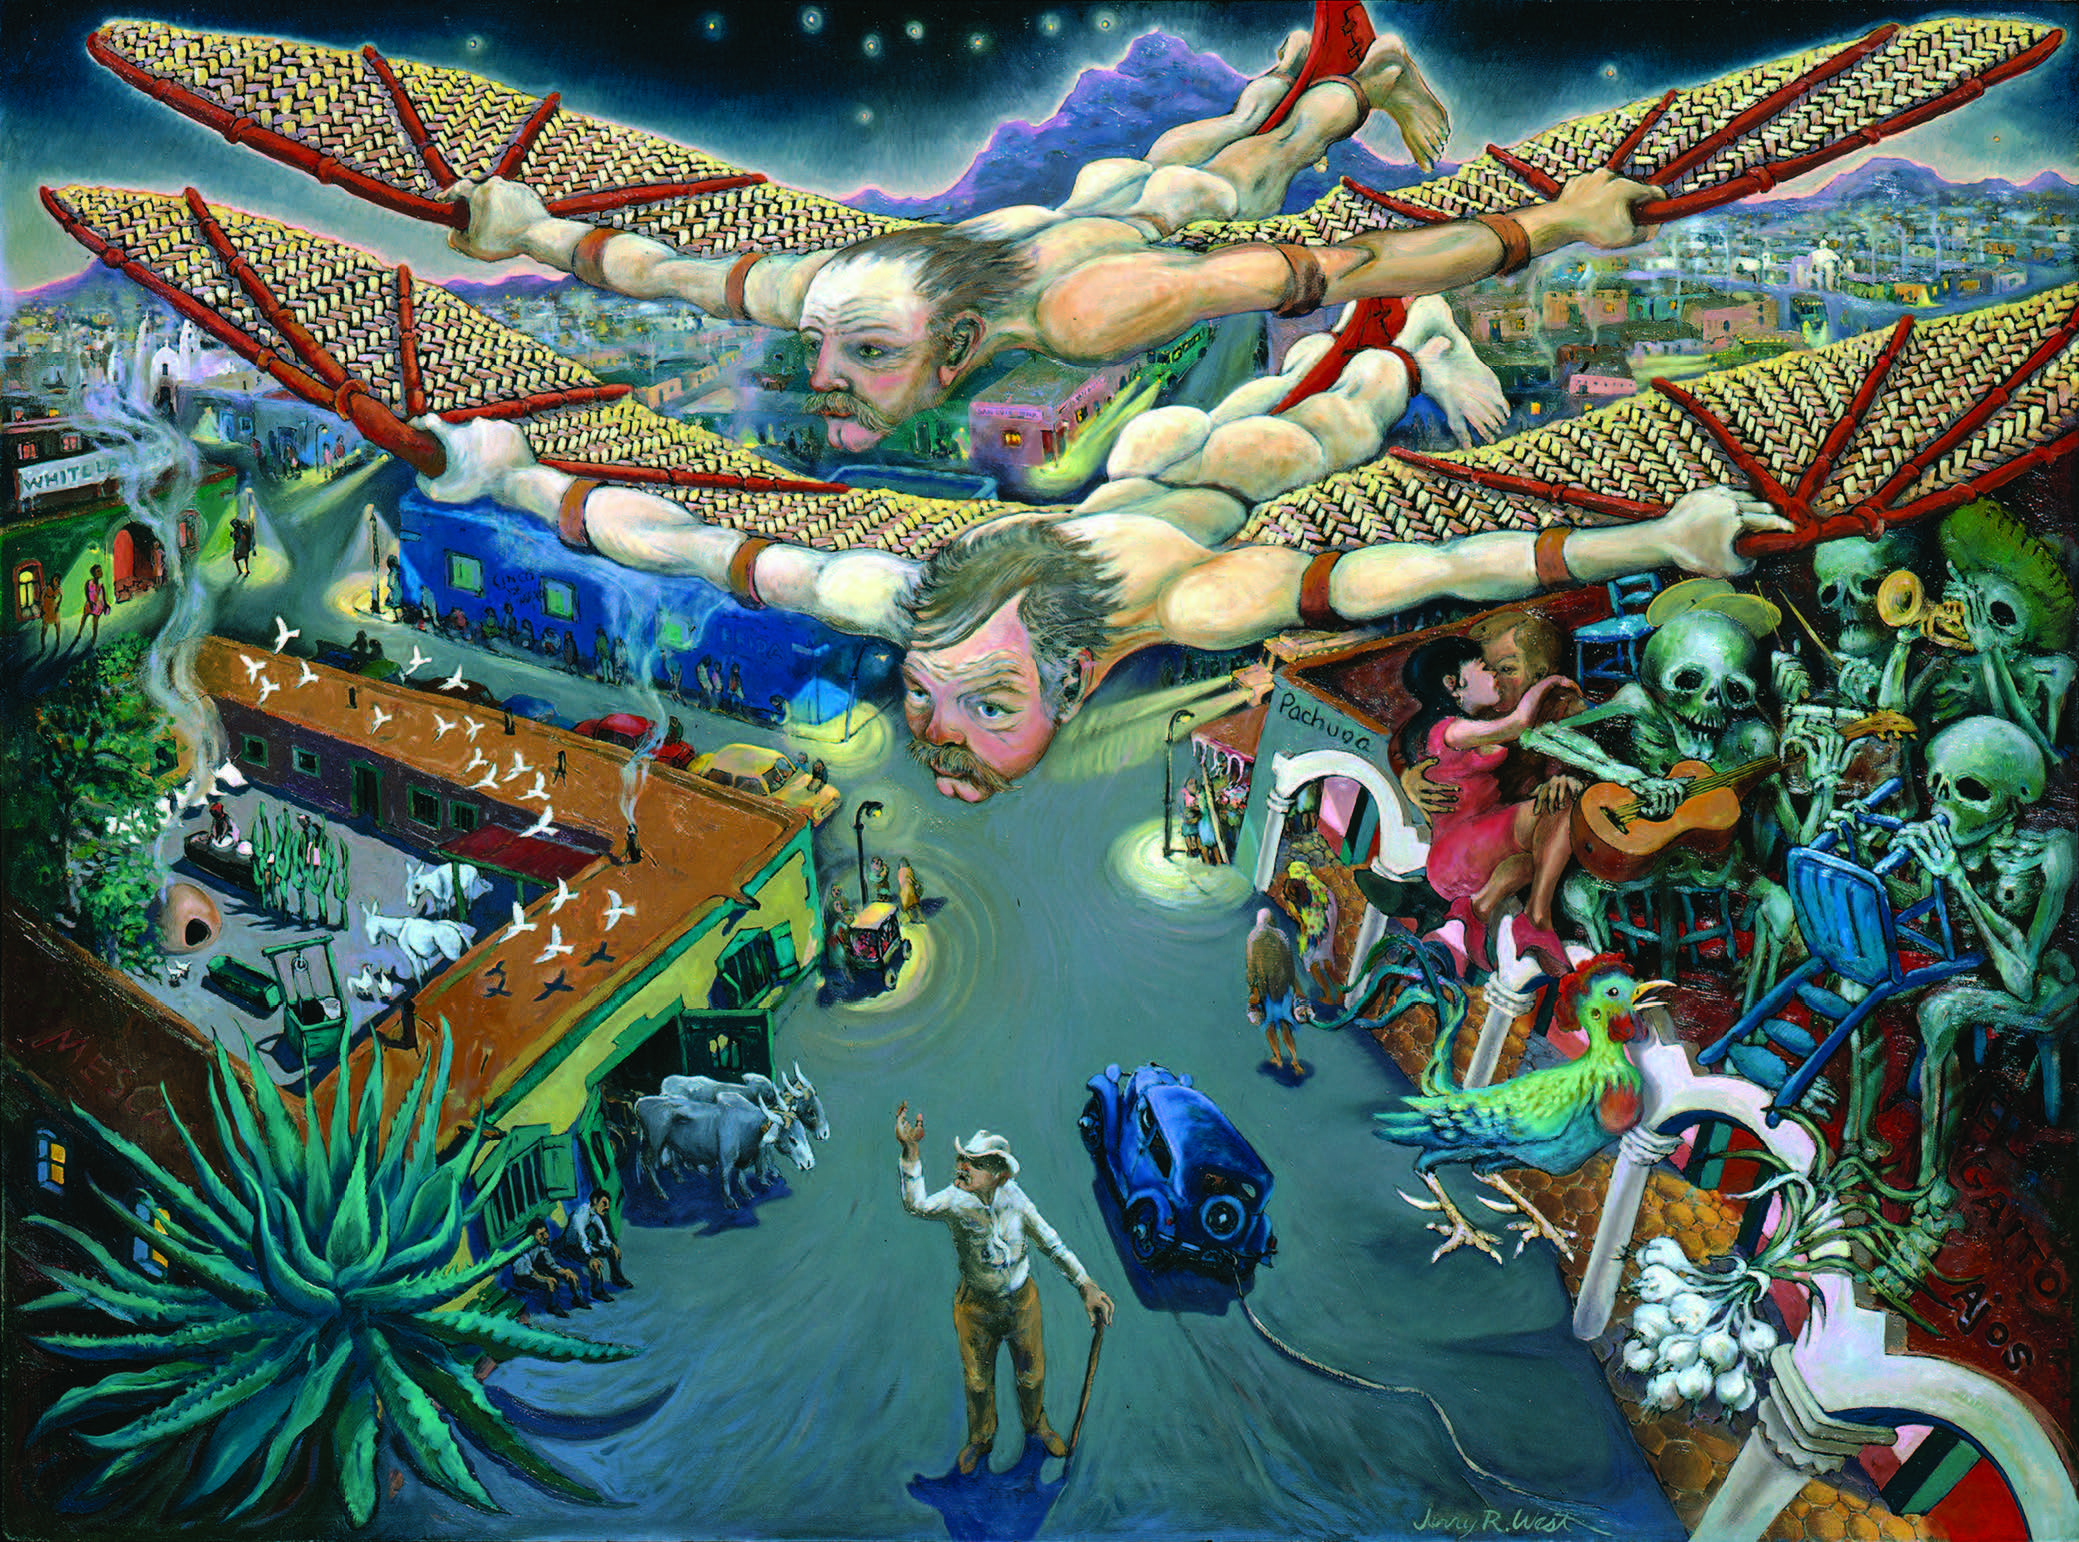 Jerry West, Flight over Juárez, 1981. Oil on masonite, 48 × 36 in. Collection of Barbara Gehring.